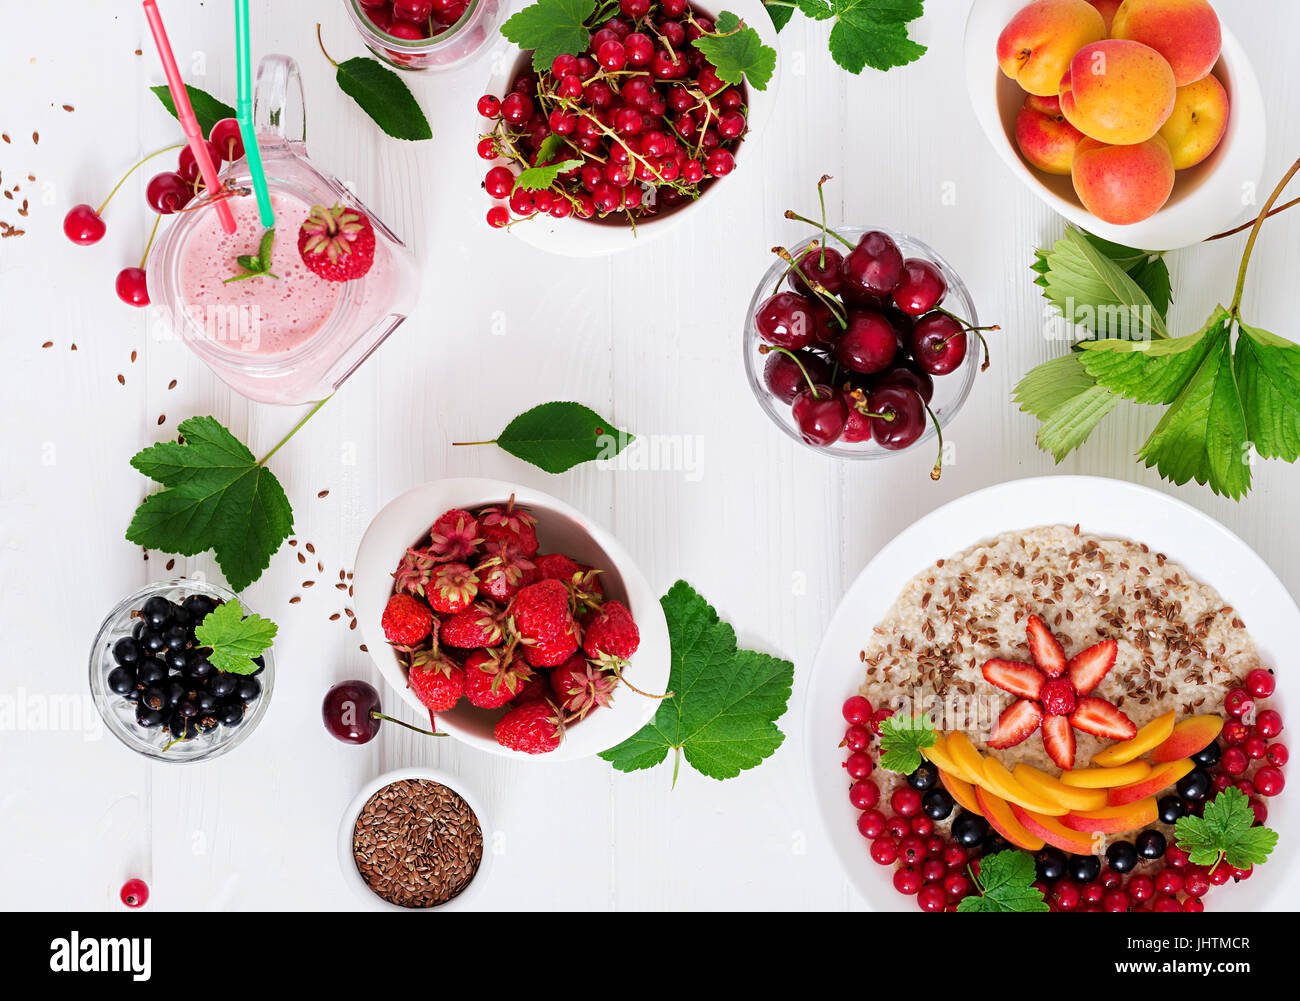 Tasty and healthy oatmeal porridge with berry, flax seeds and smoothies. Healthy breakfast. Fitness food. Proper Stock Photo